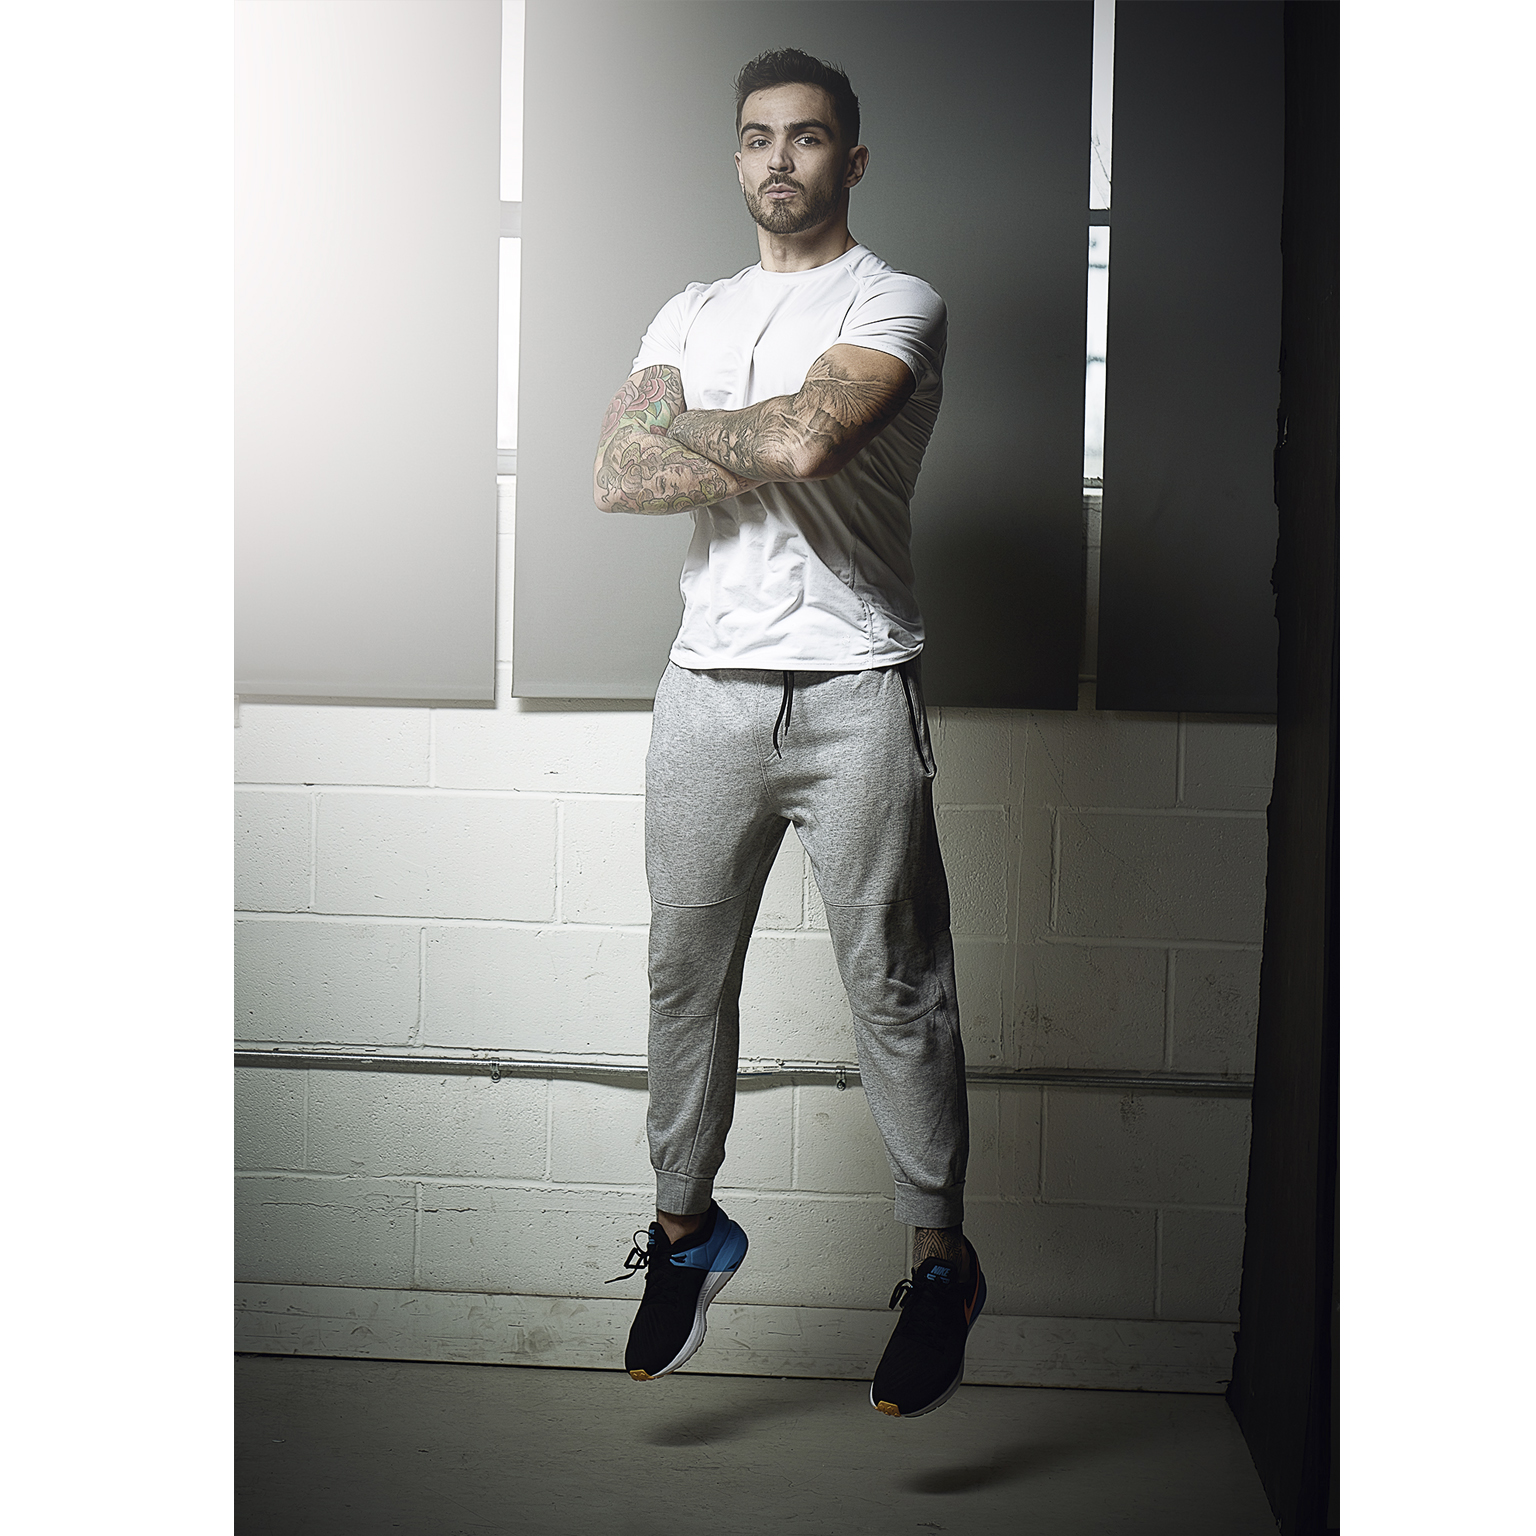 Toronto-Fitness-Model-Agency-Fitness-Casual-Commercial-Rob-Lopez-Fitness-Model